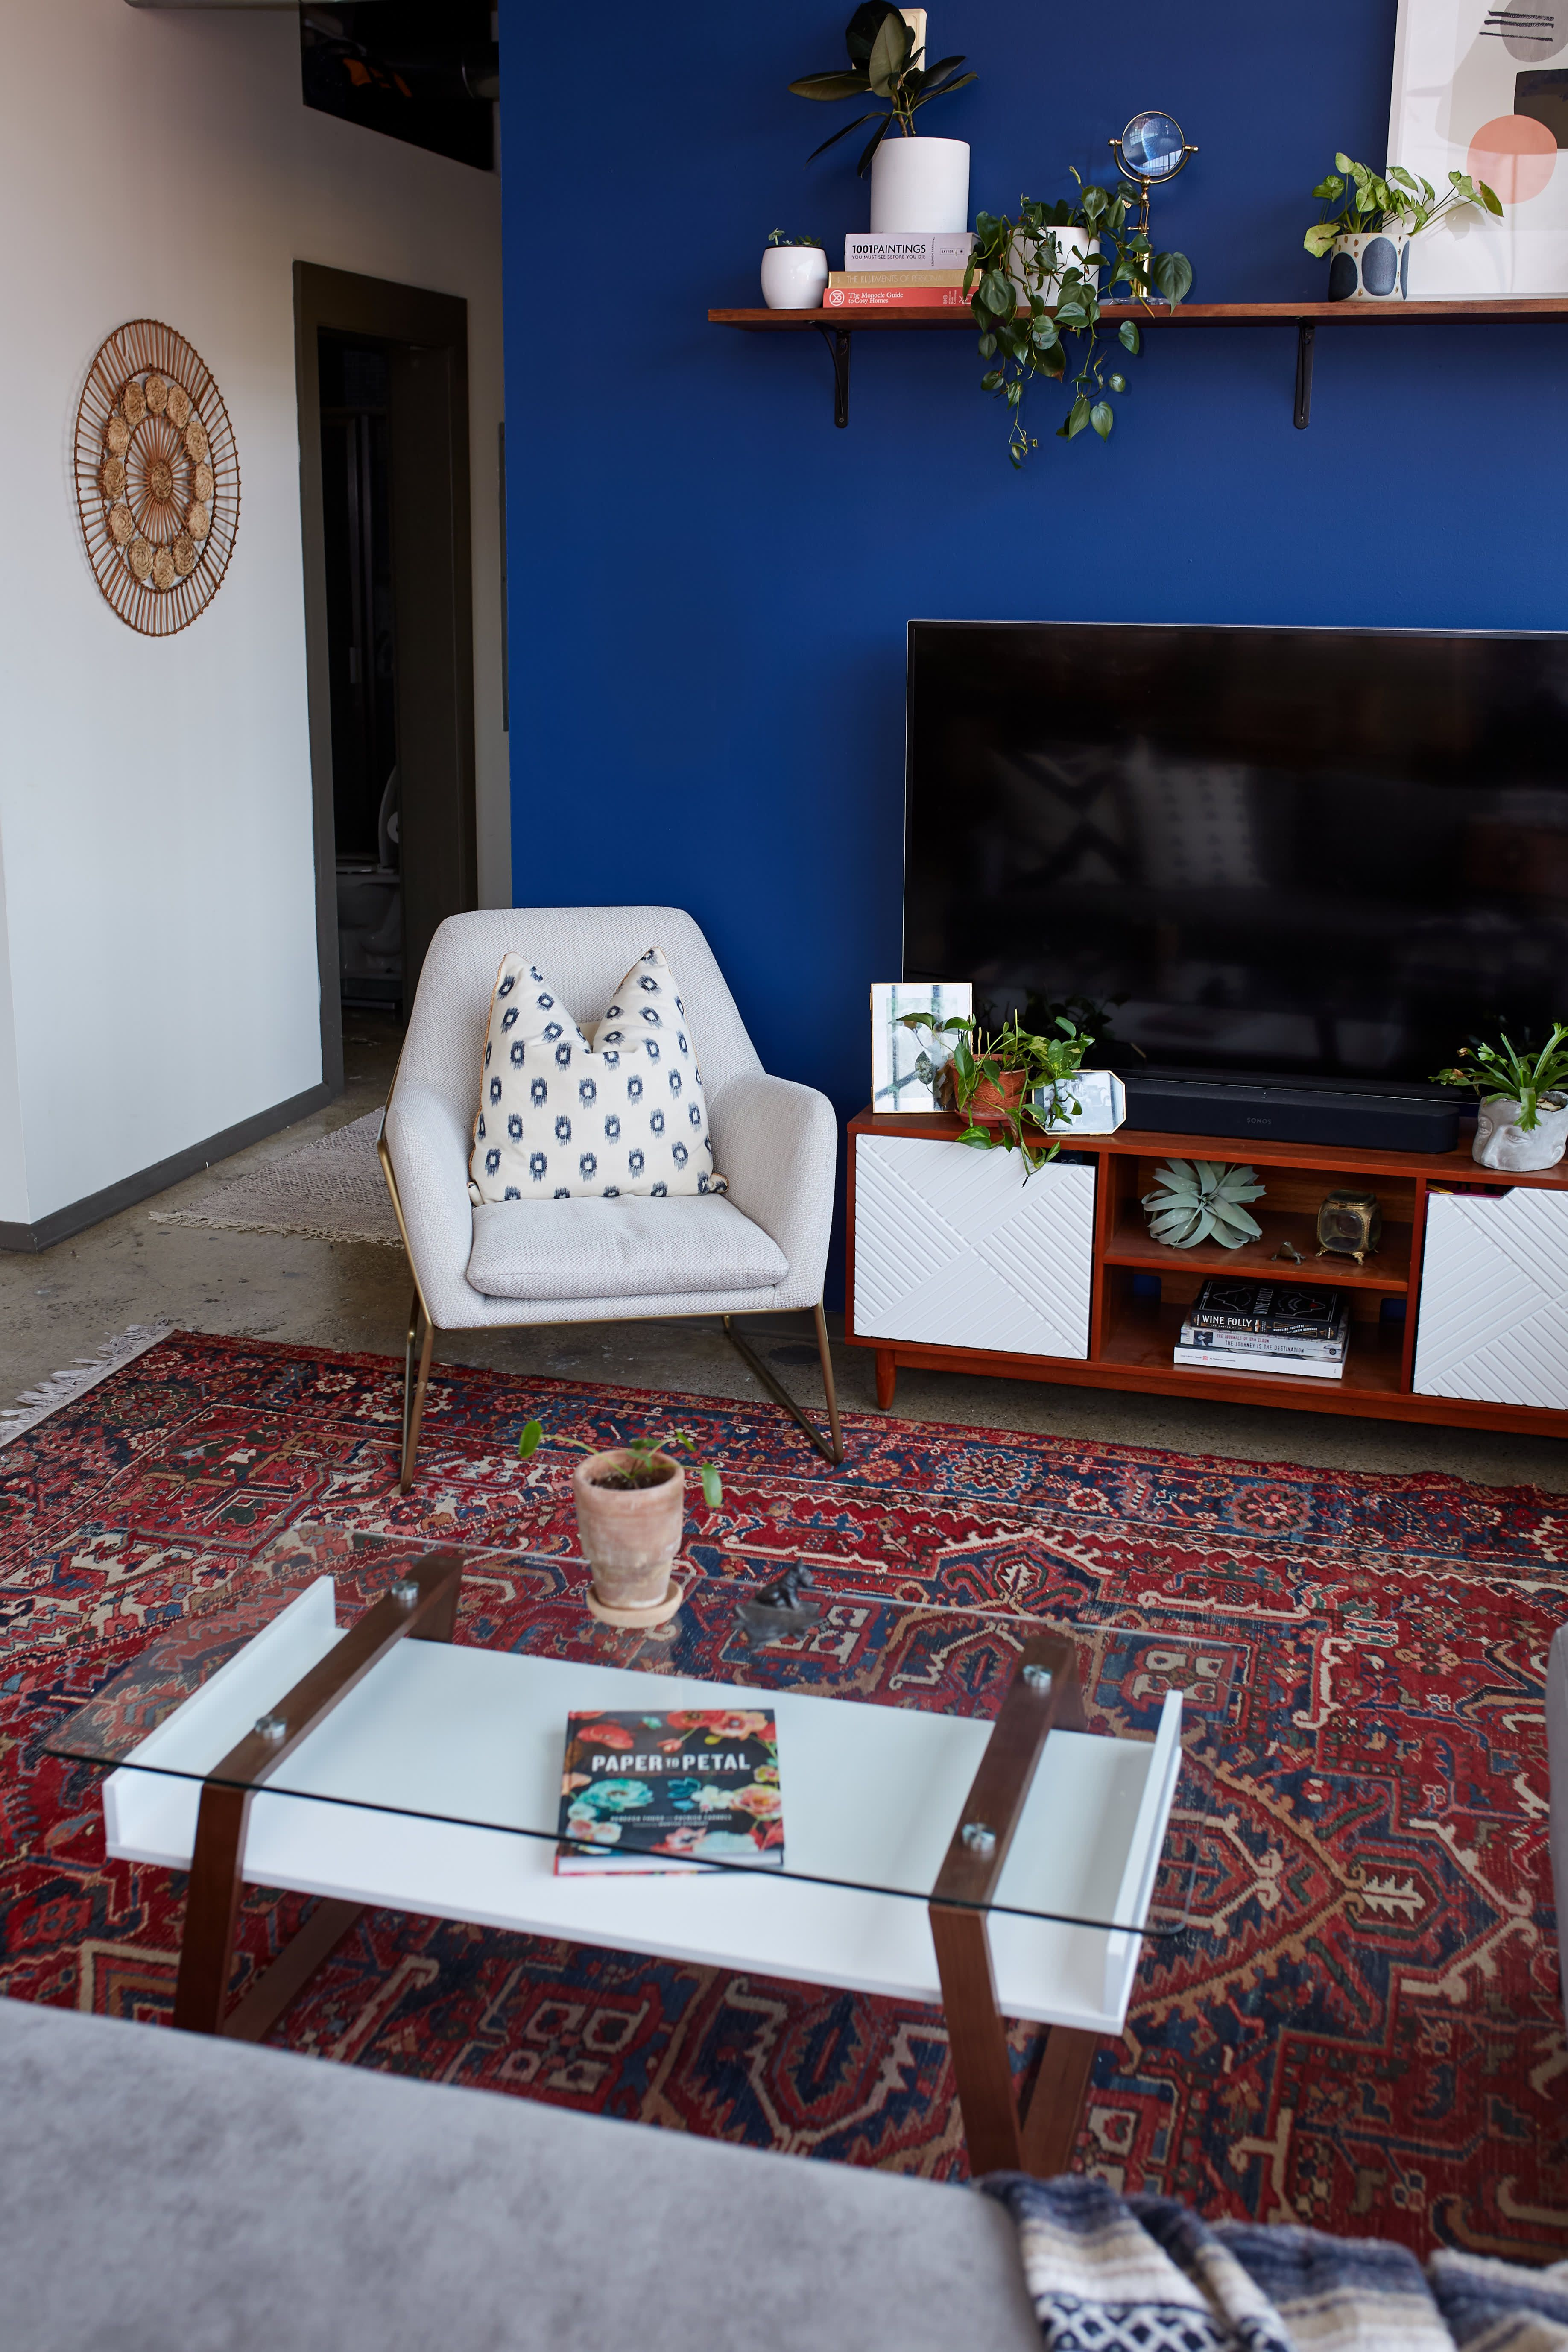 A Bold Blue Accent Wall Is Just One Of The Beautiful Things About This Knoxville Apartment Blue Accent Walls Blue Accent Wall Living Room Accent Walls In Living Room